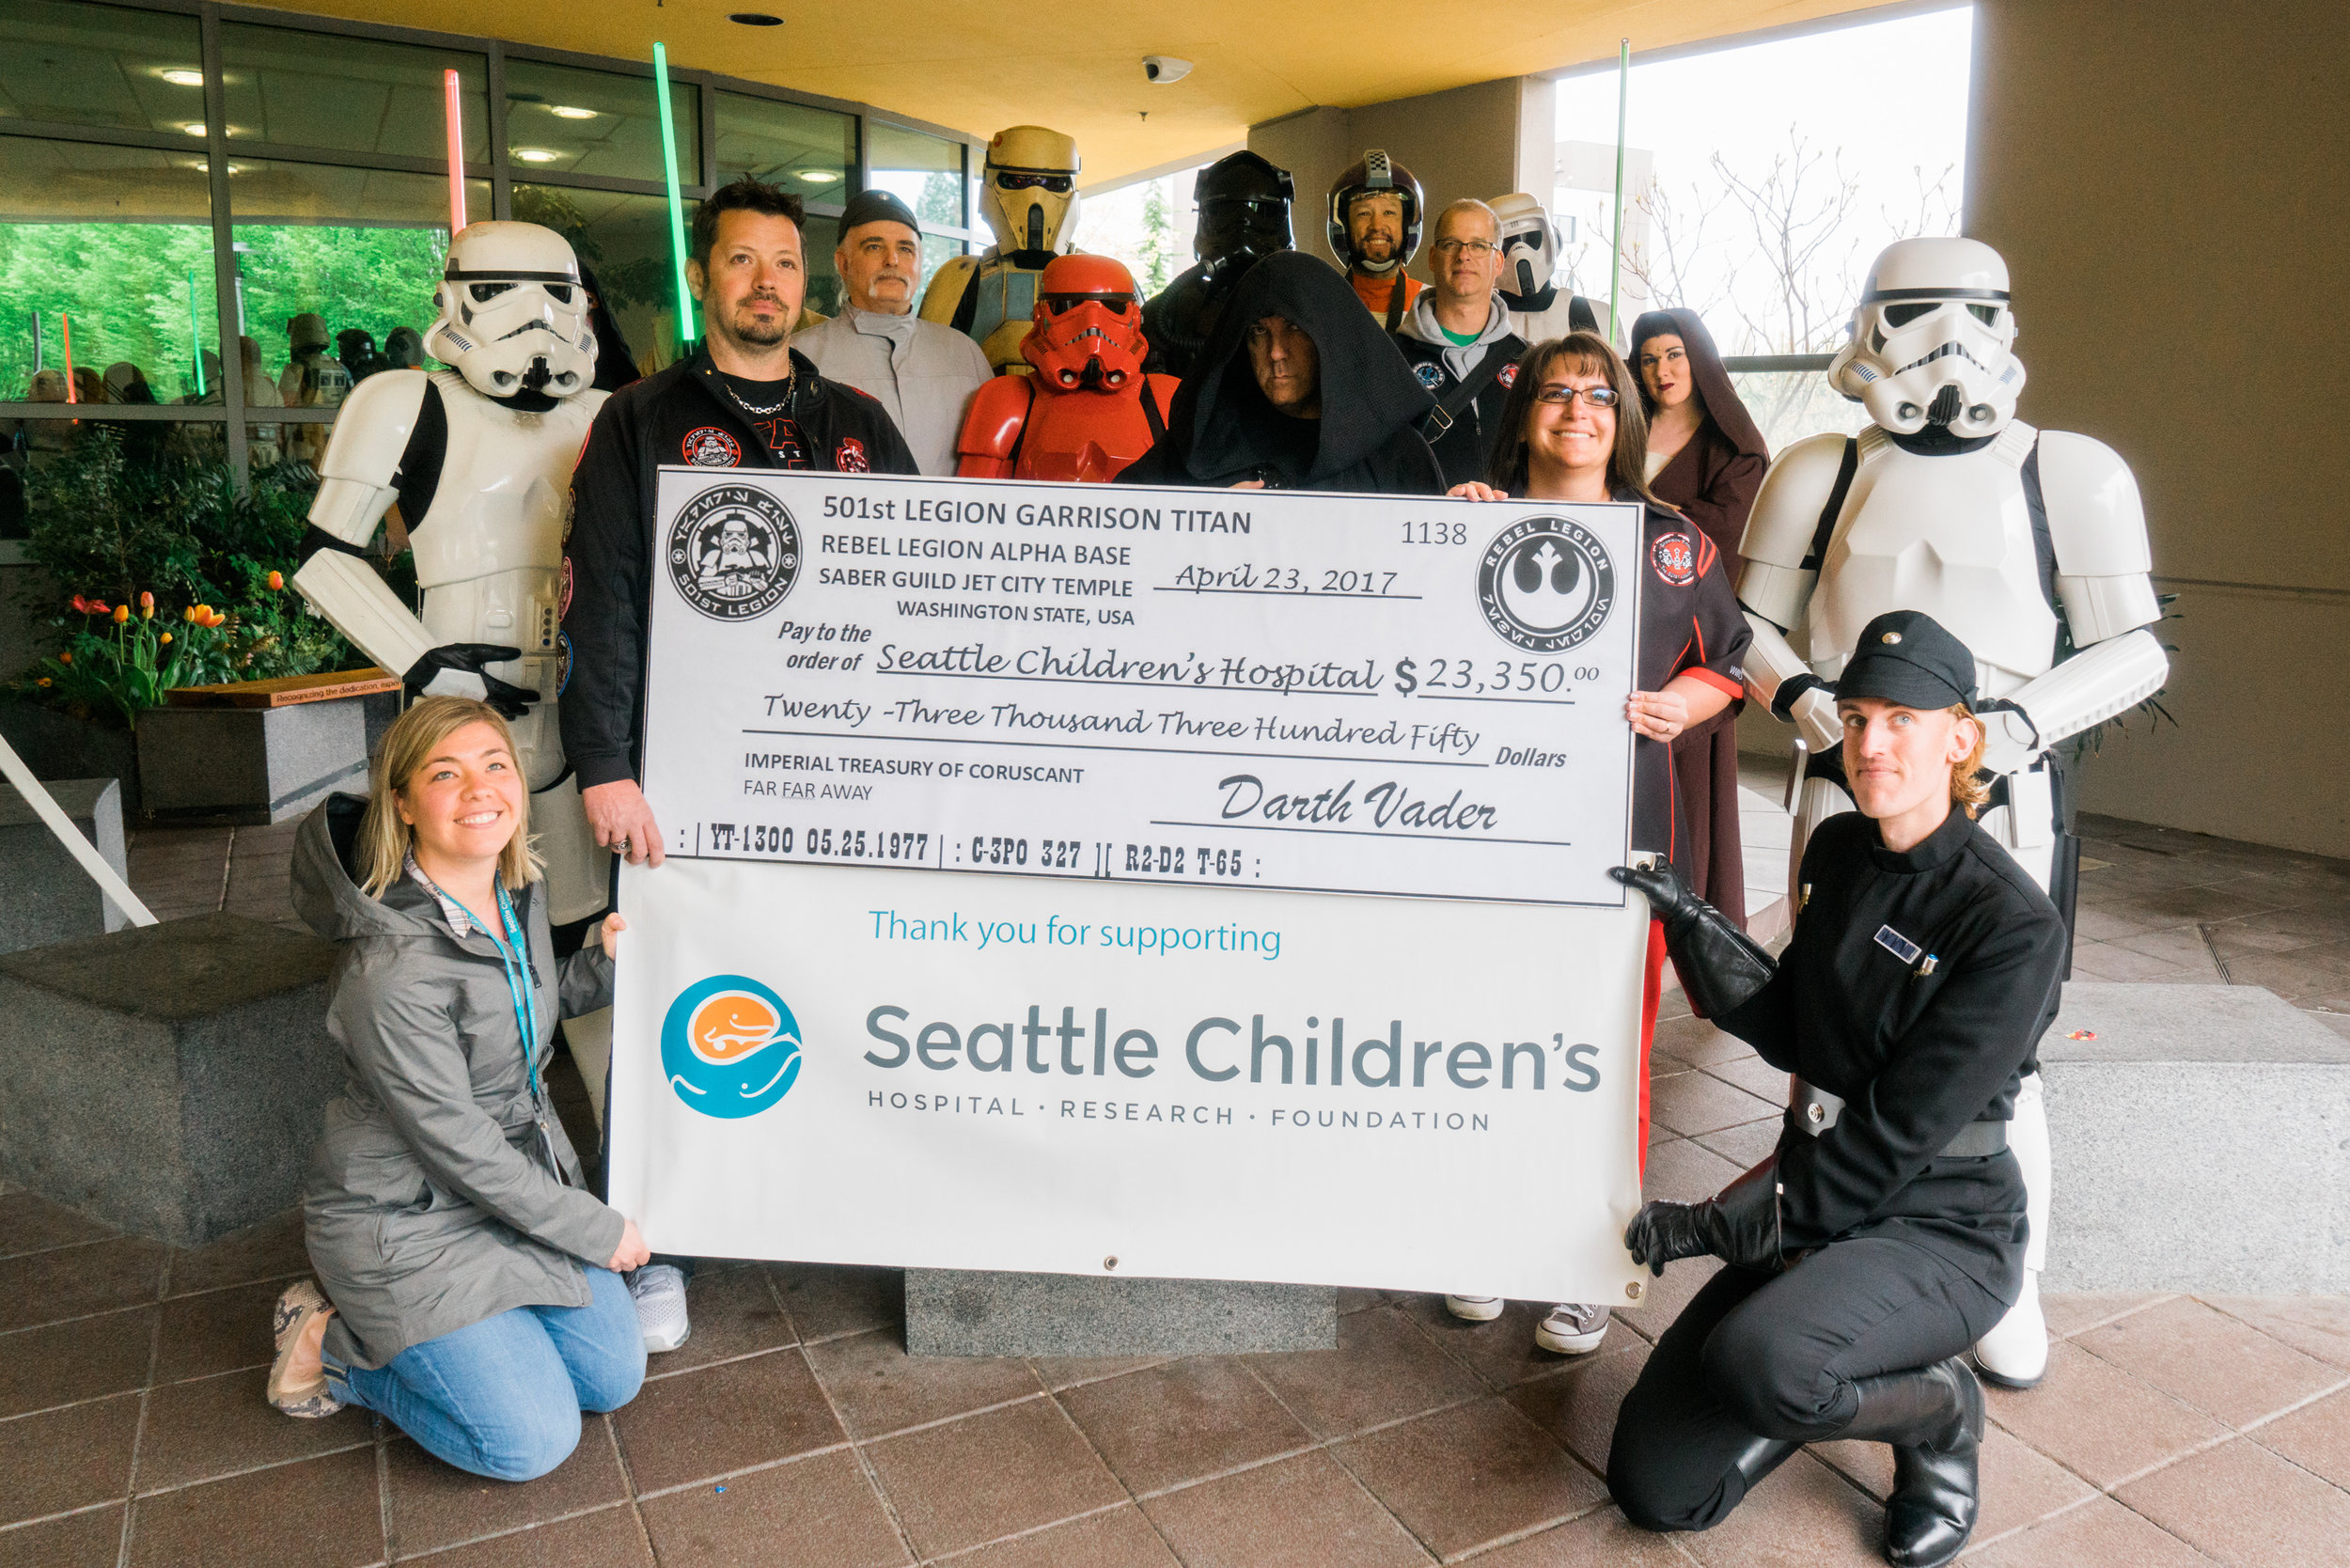 The 501st and Rebel Legion Present the Donation to Seattle Children's Hospital